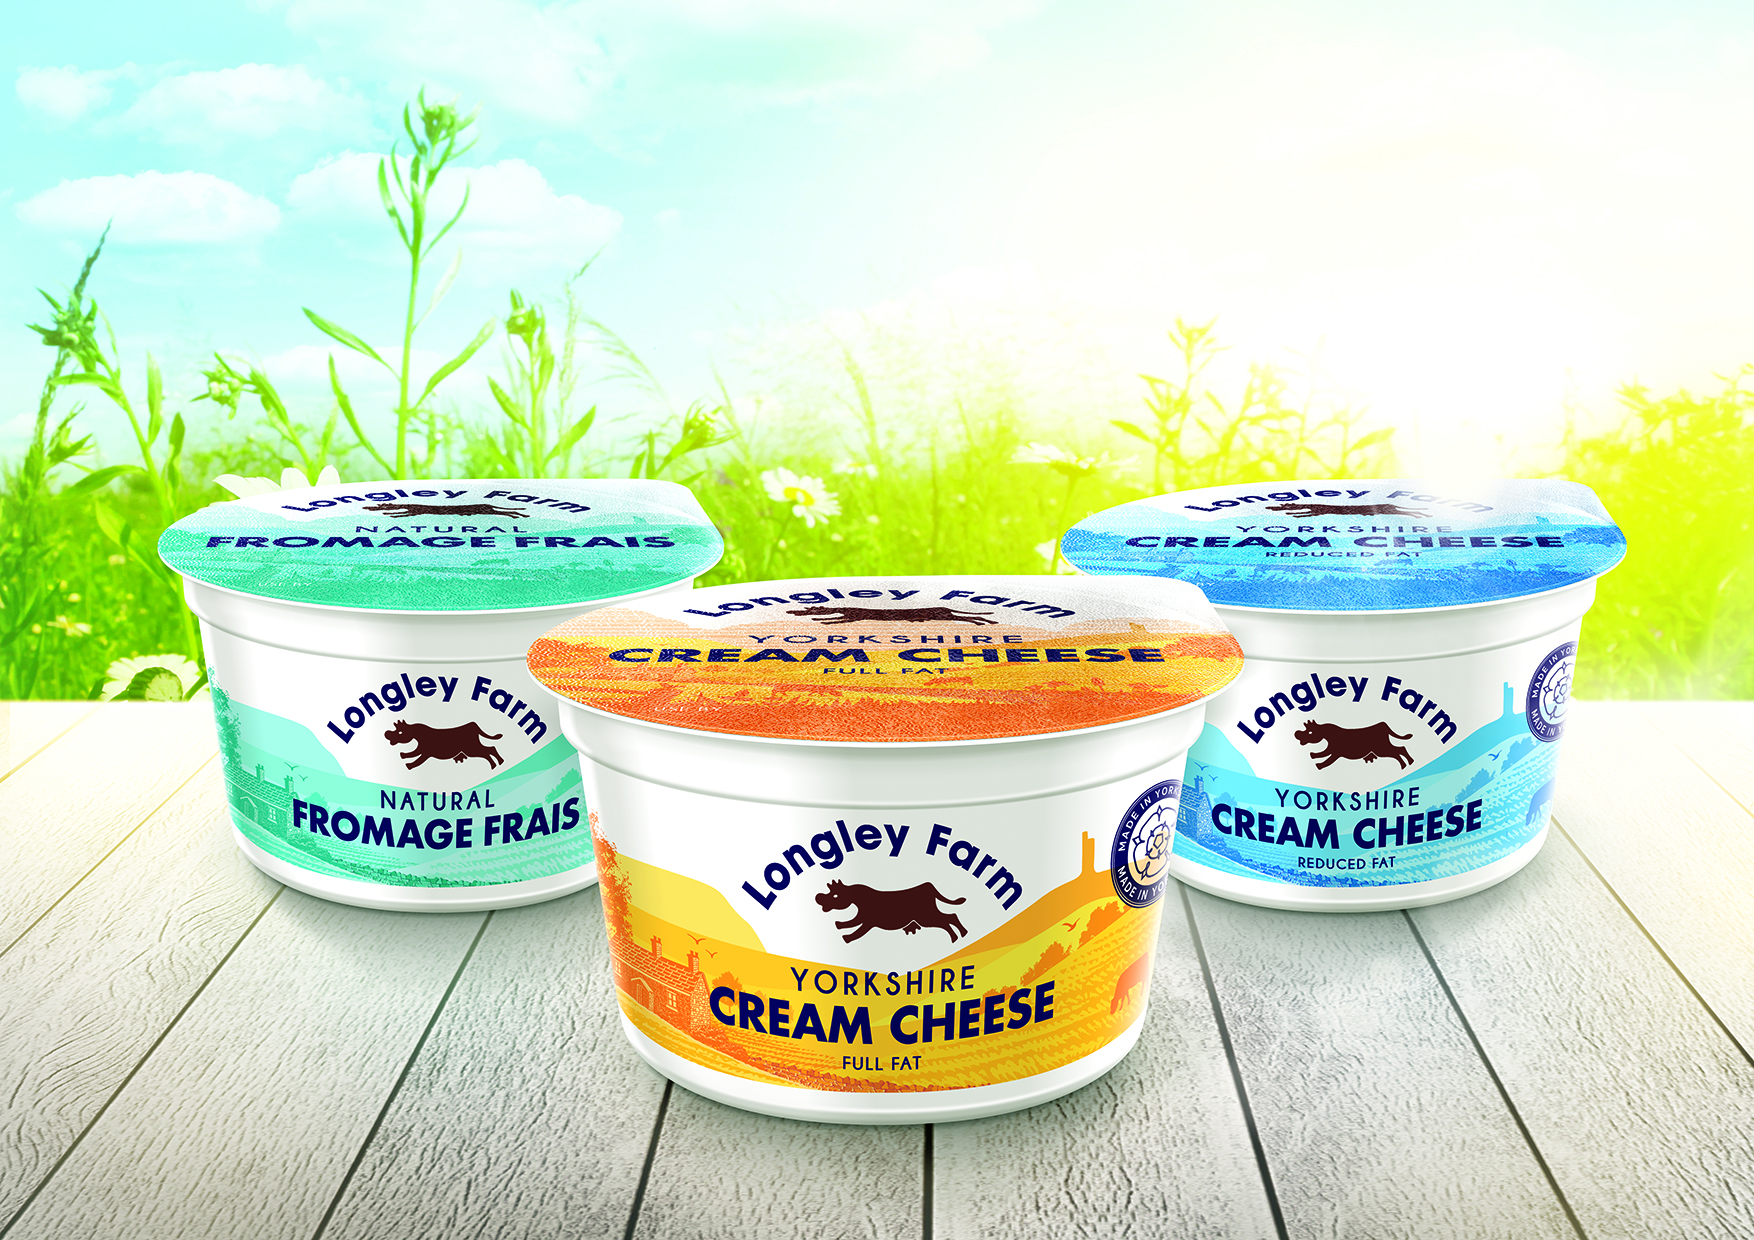 New Rebrand Packaging Design for Longley Farm for UK Market